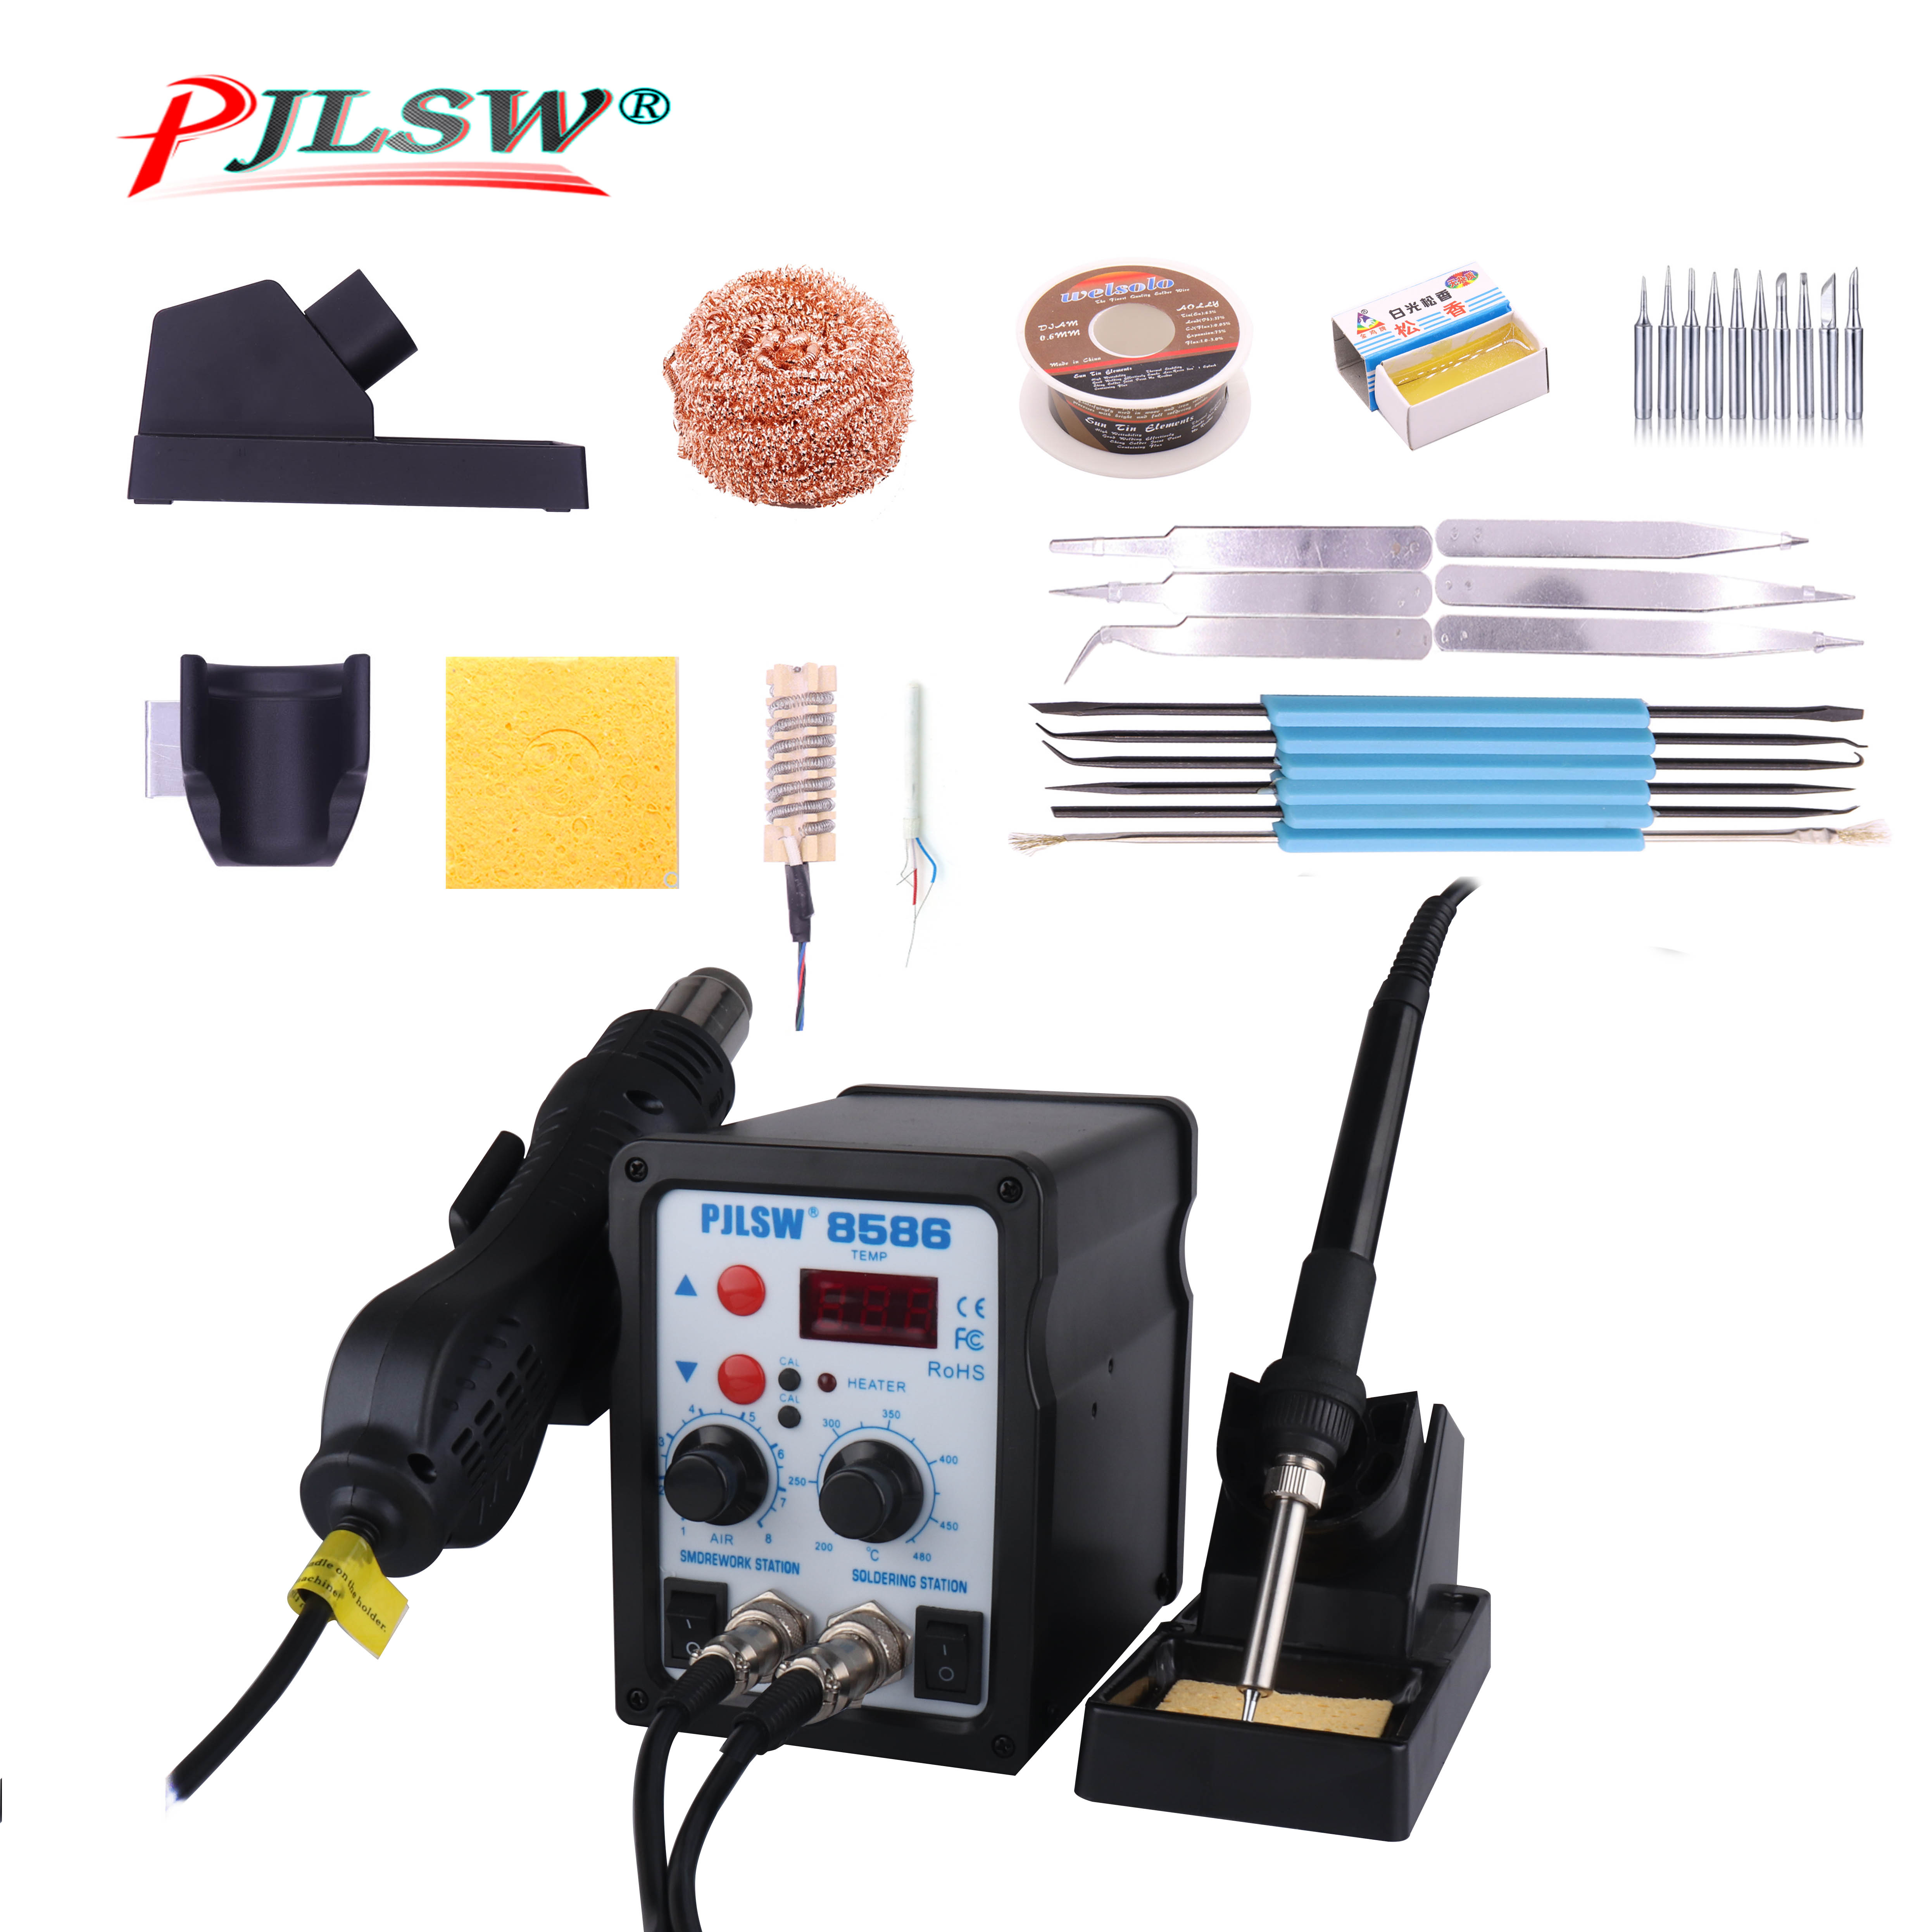 PJLSW  700W Double Digital Display Electric Soldering Irons +Hot Air Gun Better SMD Rework Station Upgraded 8586